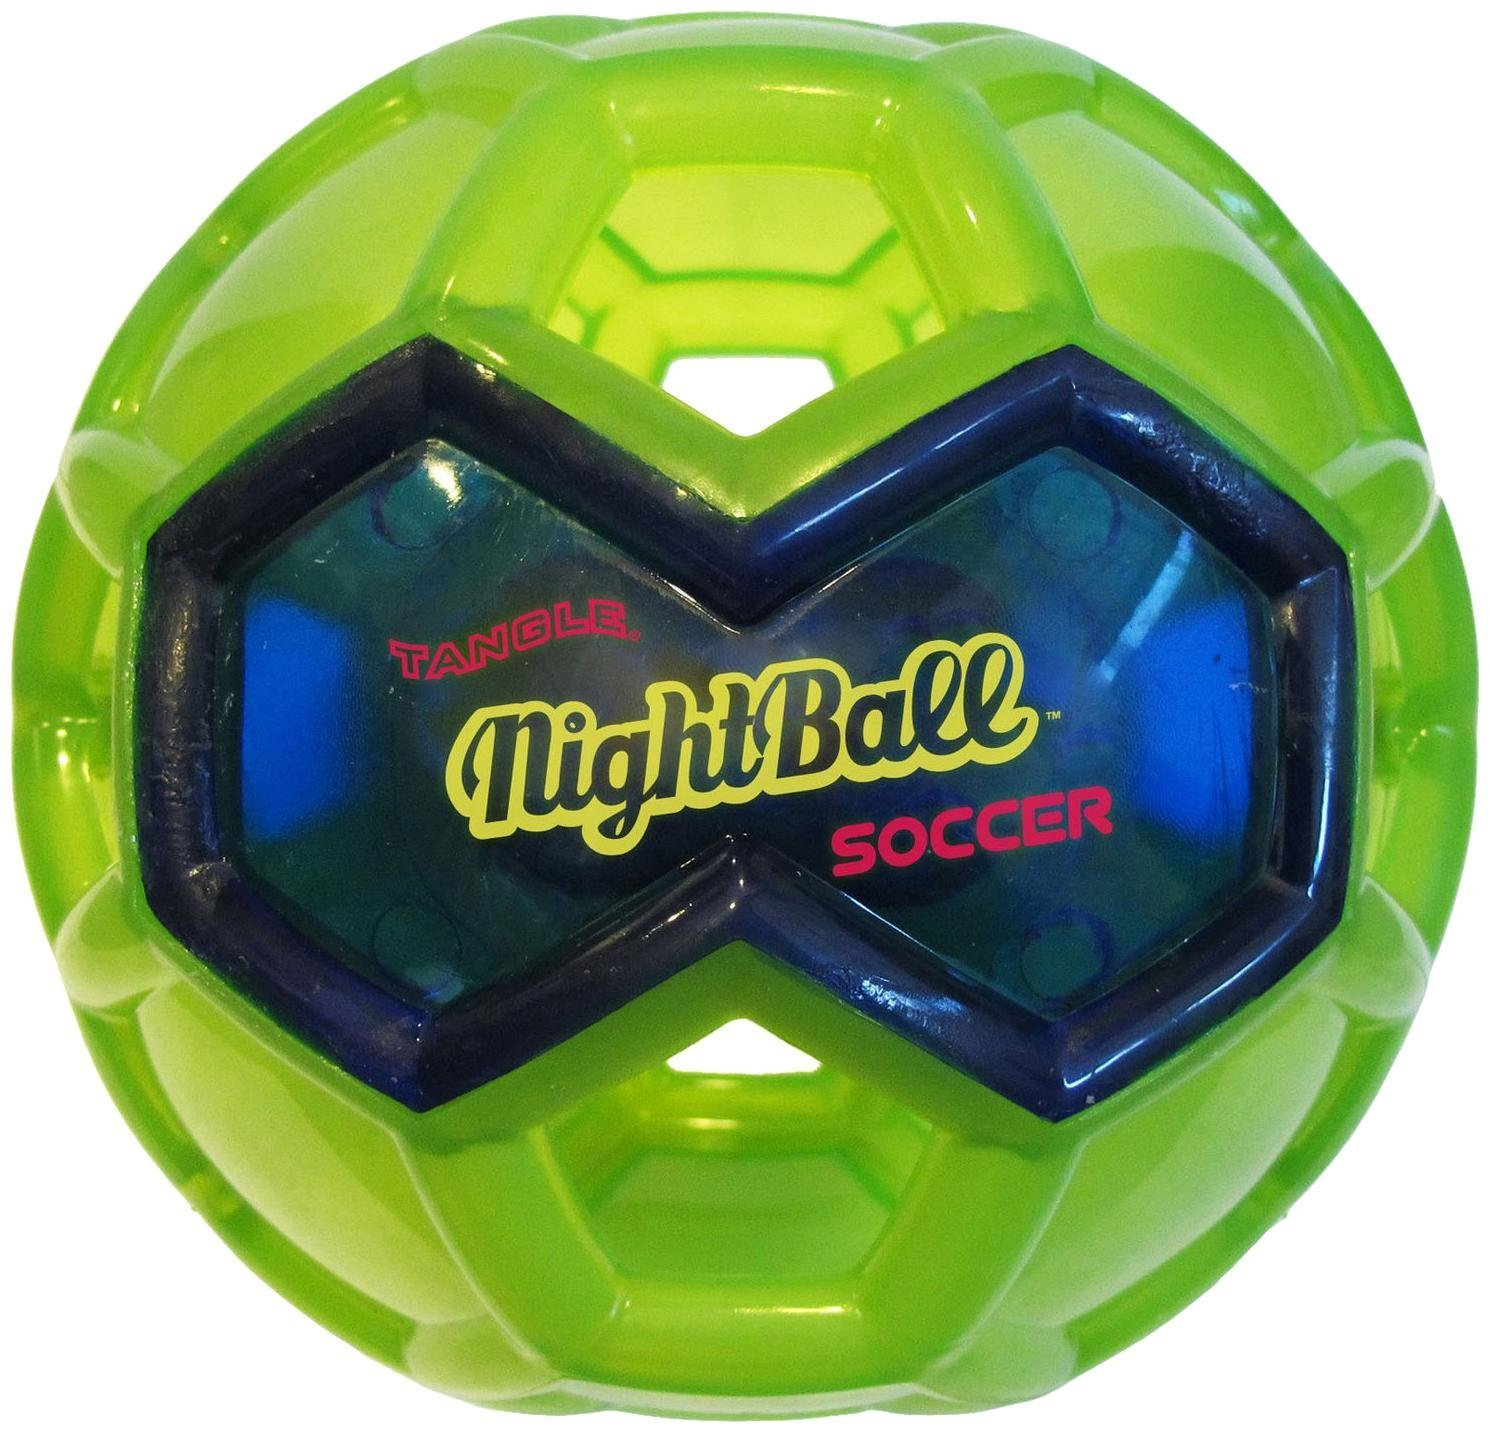 Tangles 12756 Nightball Soccer Small Toy by Tangles